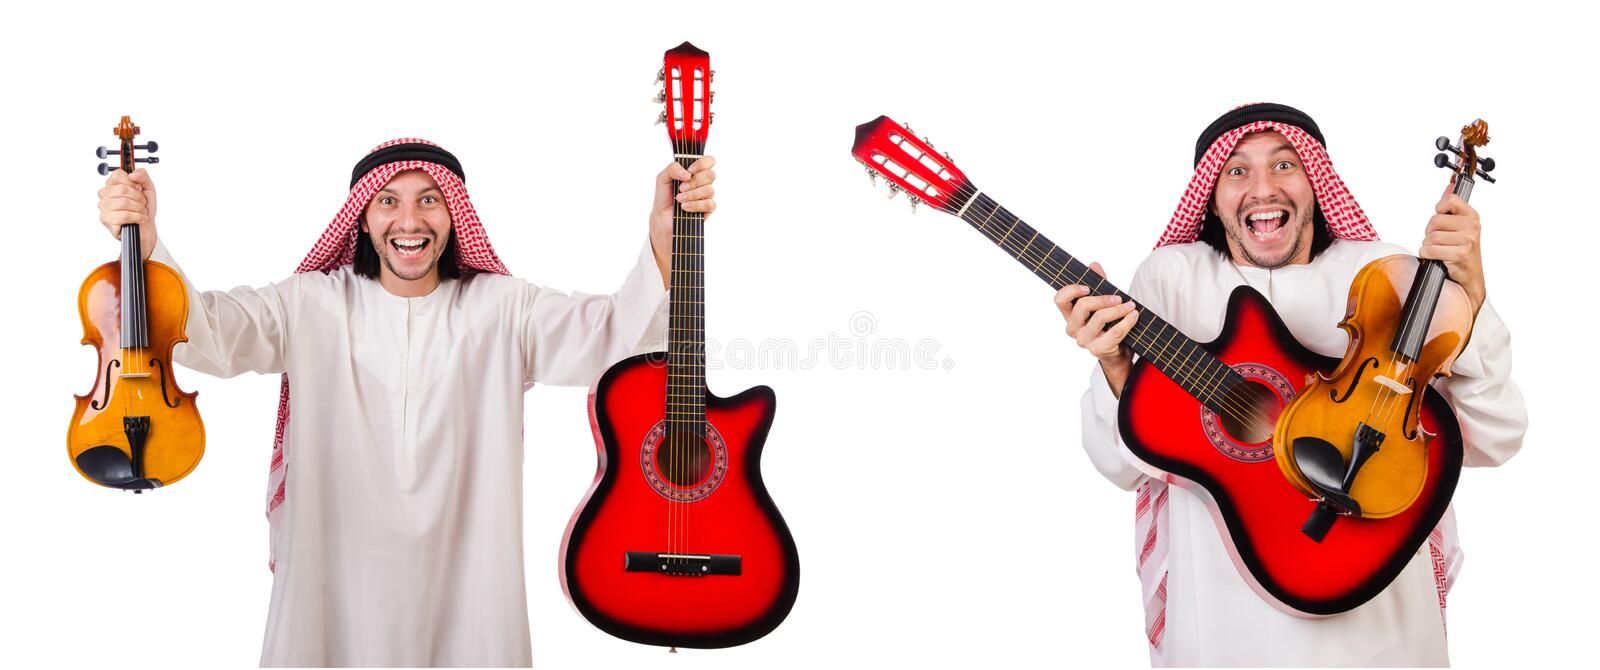 The arab musician with violin and guitar isolated on white royalty free stock photos